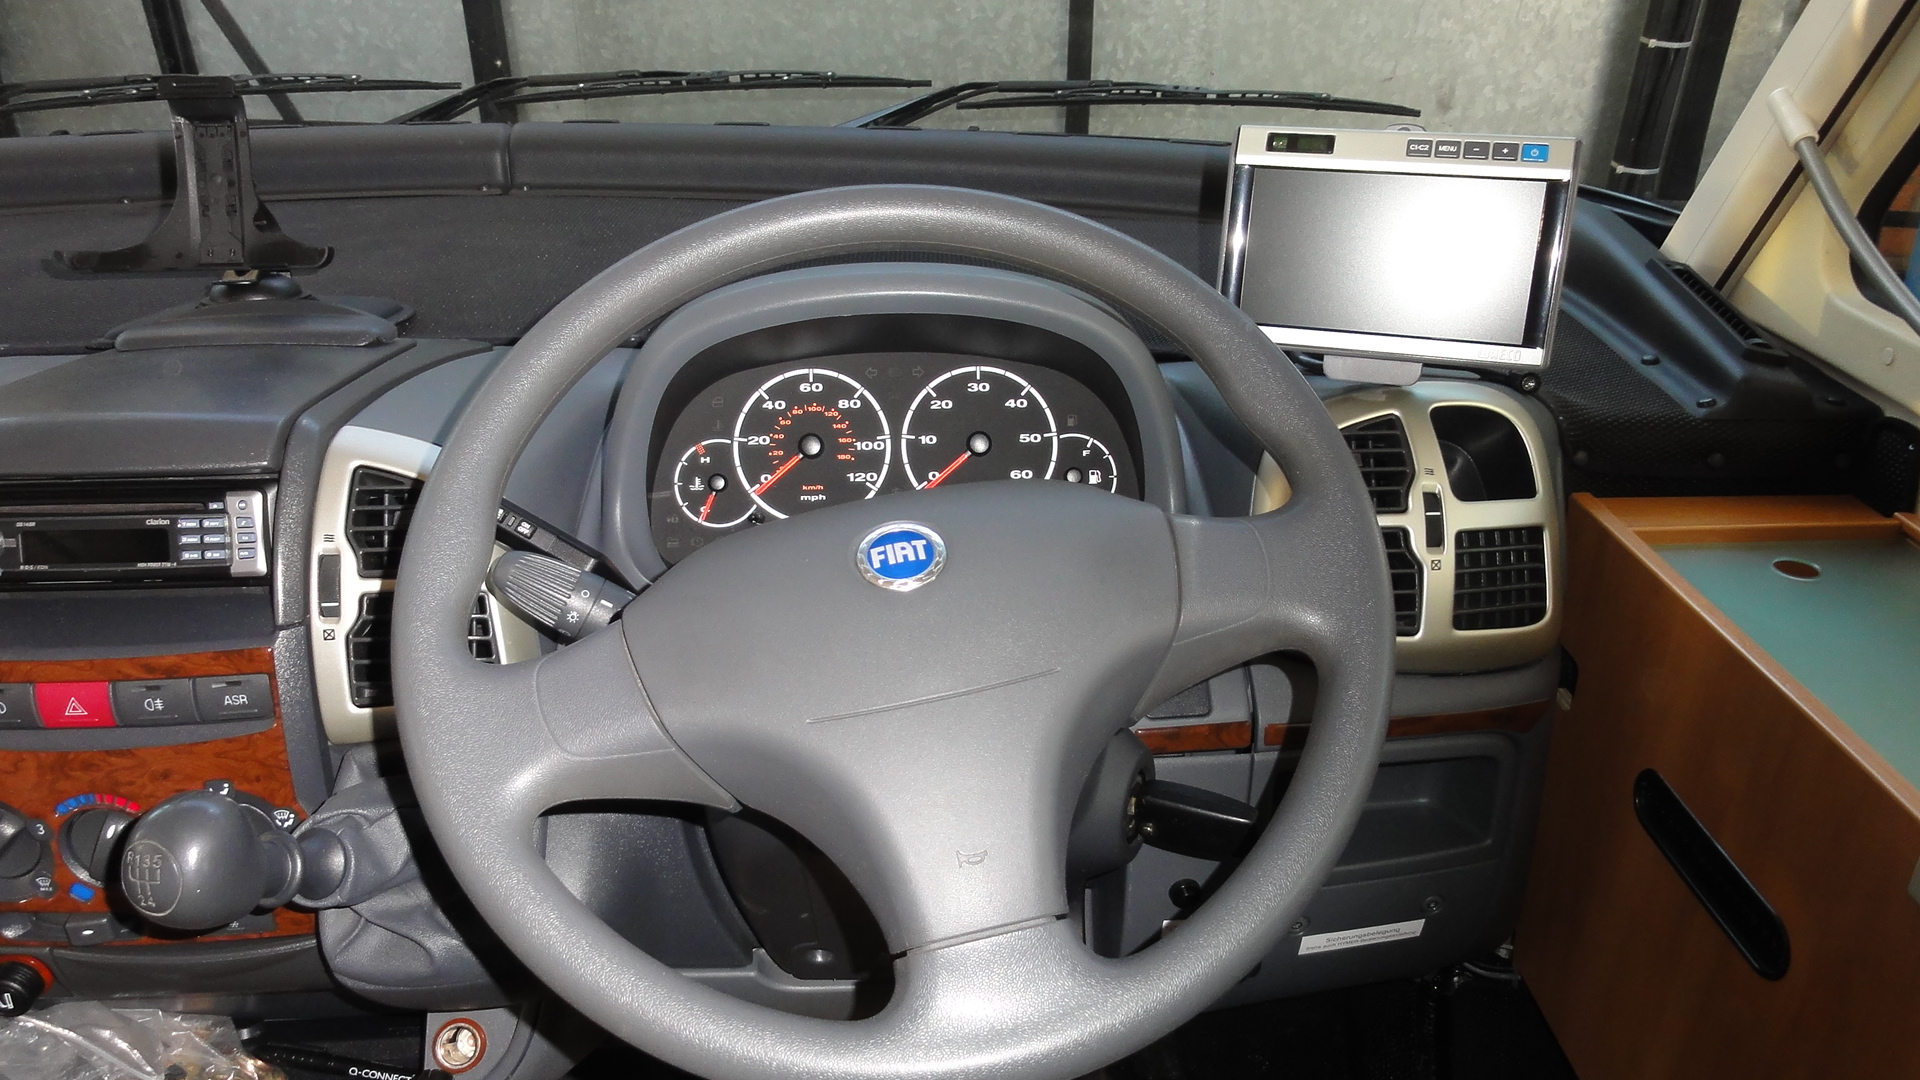 Hymer steering wheel with M7L installed